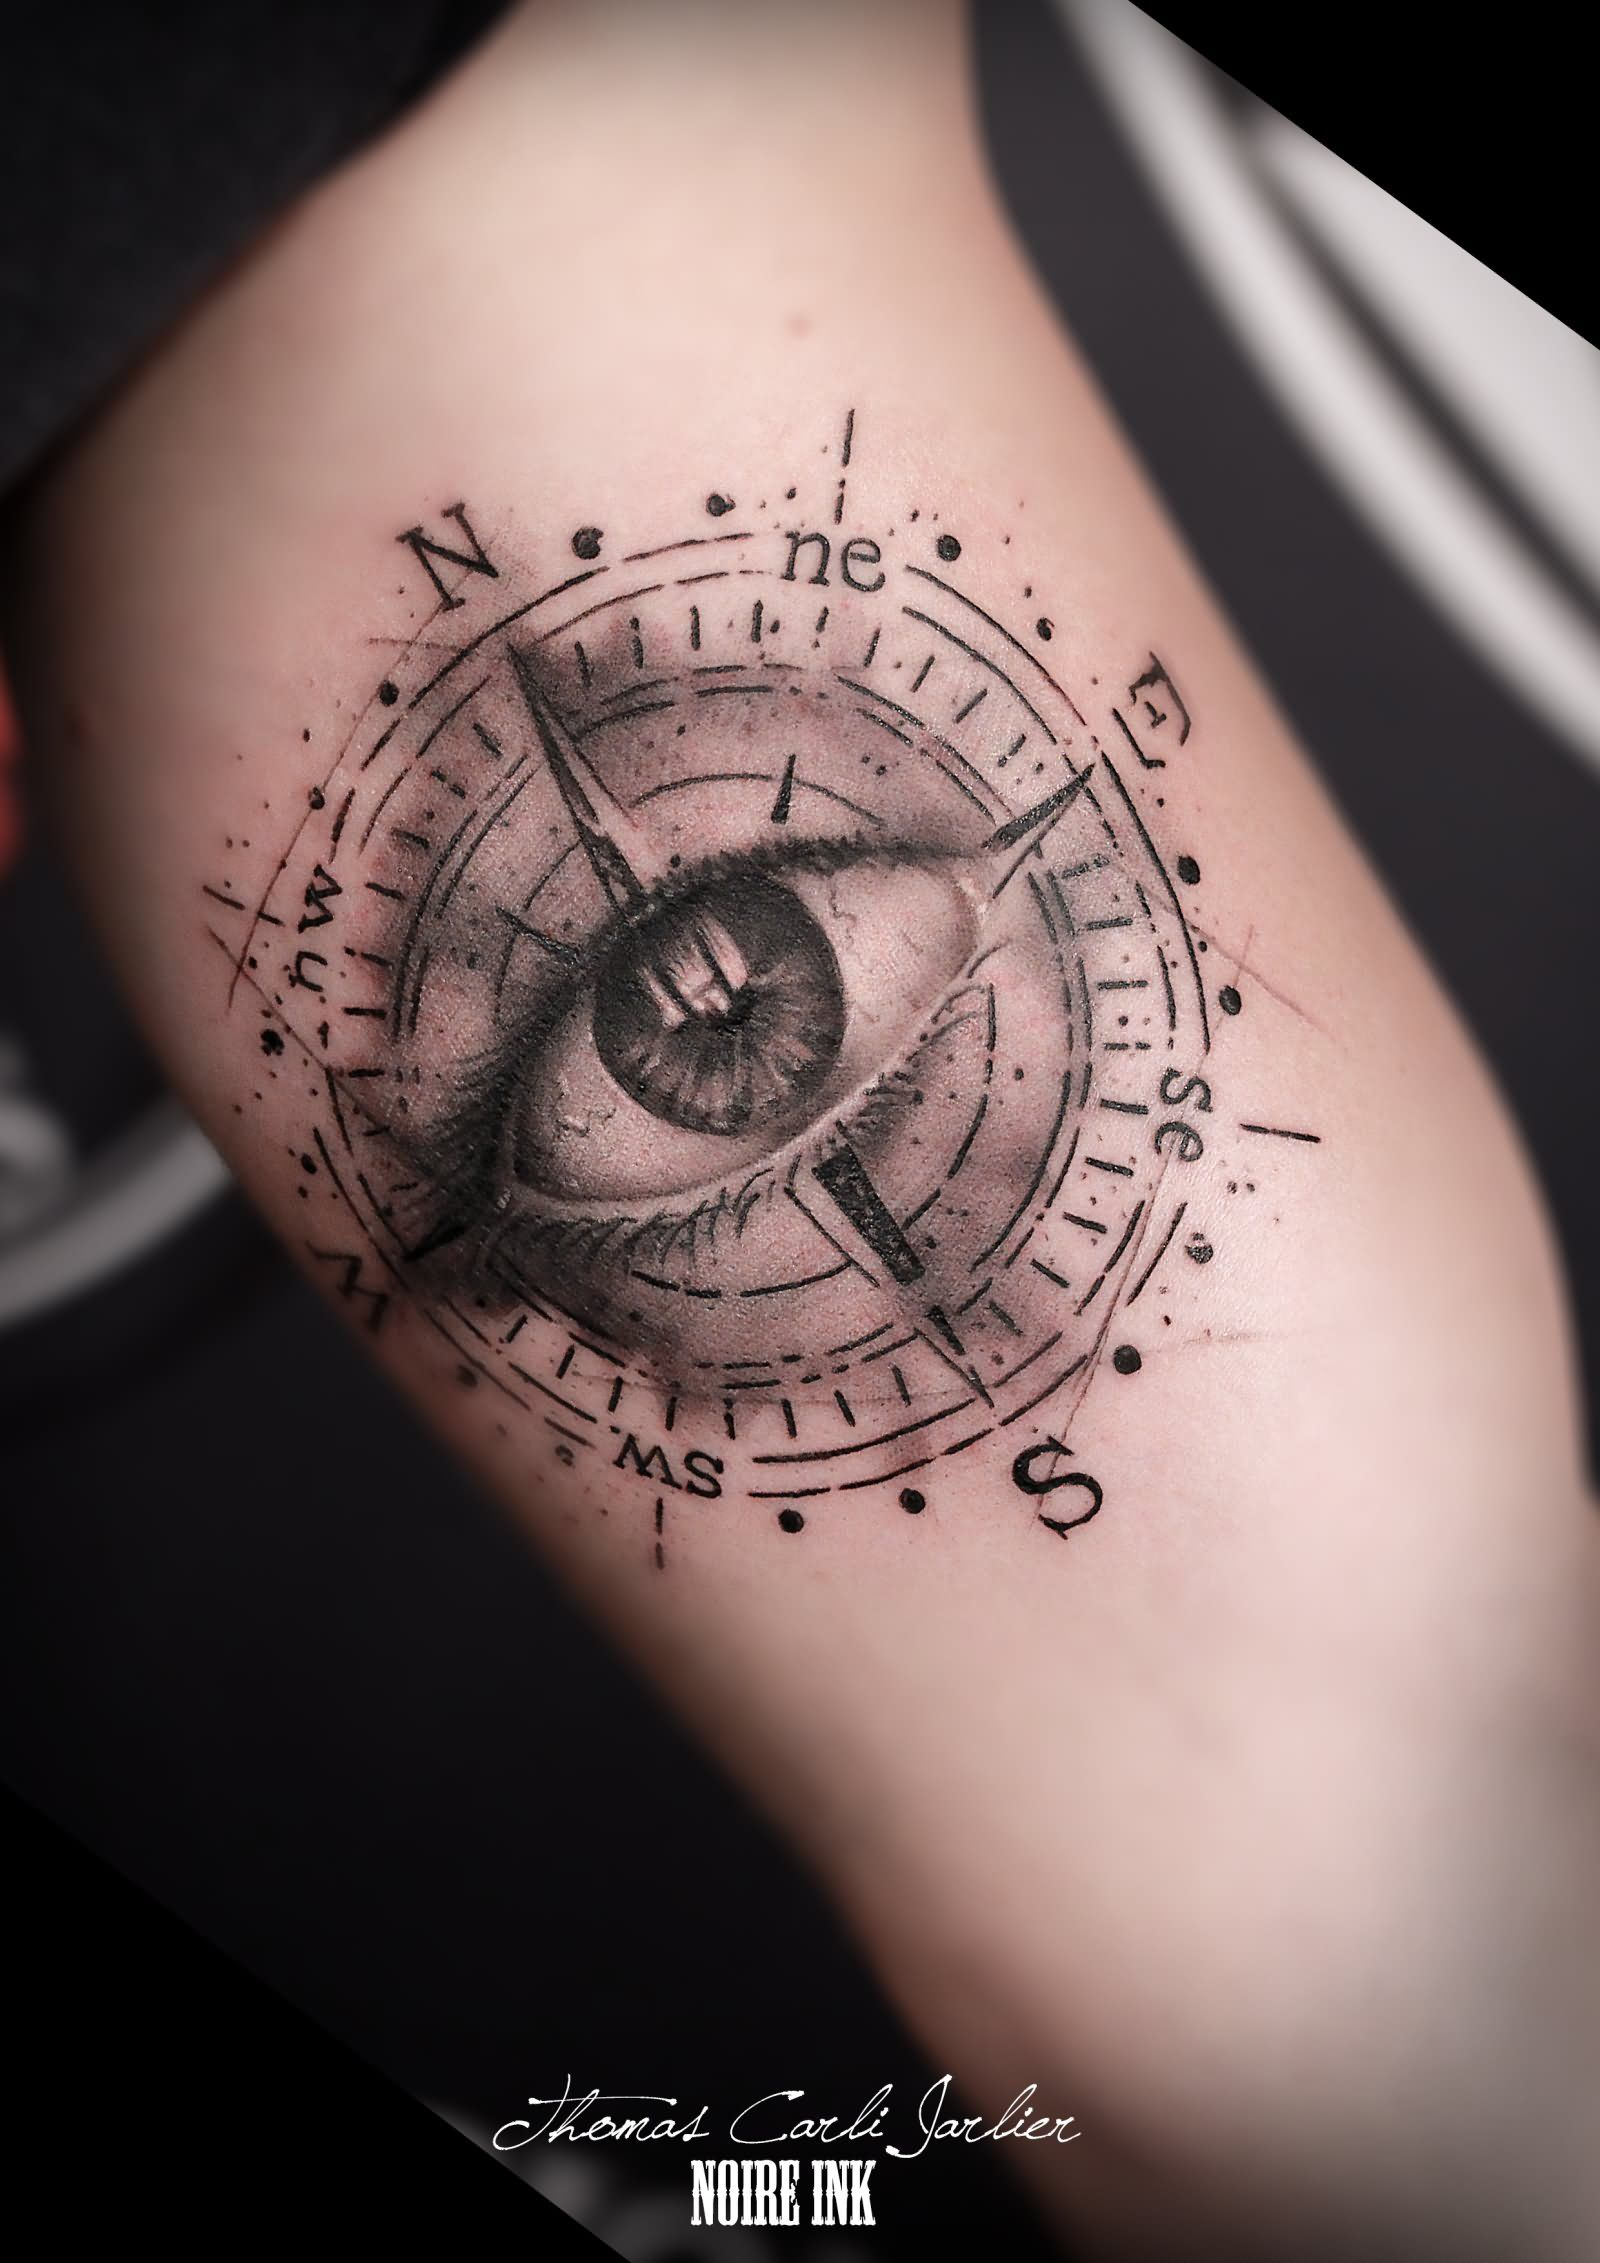 Eye In Compass Tattoo Design For Sleeve Compass Tattoo Elbow Tattoos Eye Tattoo